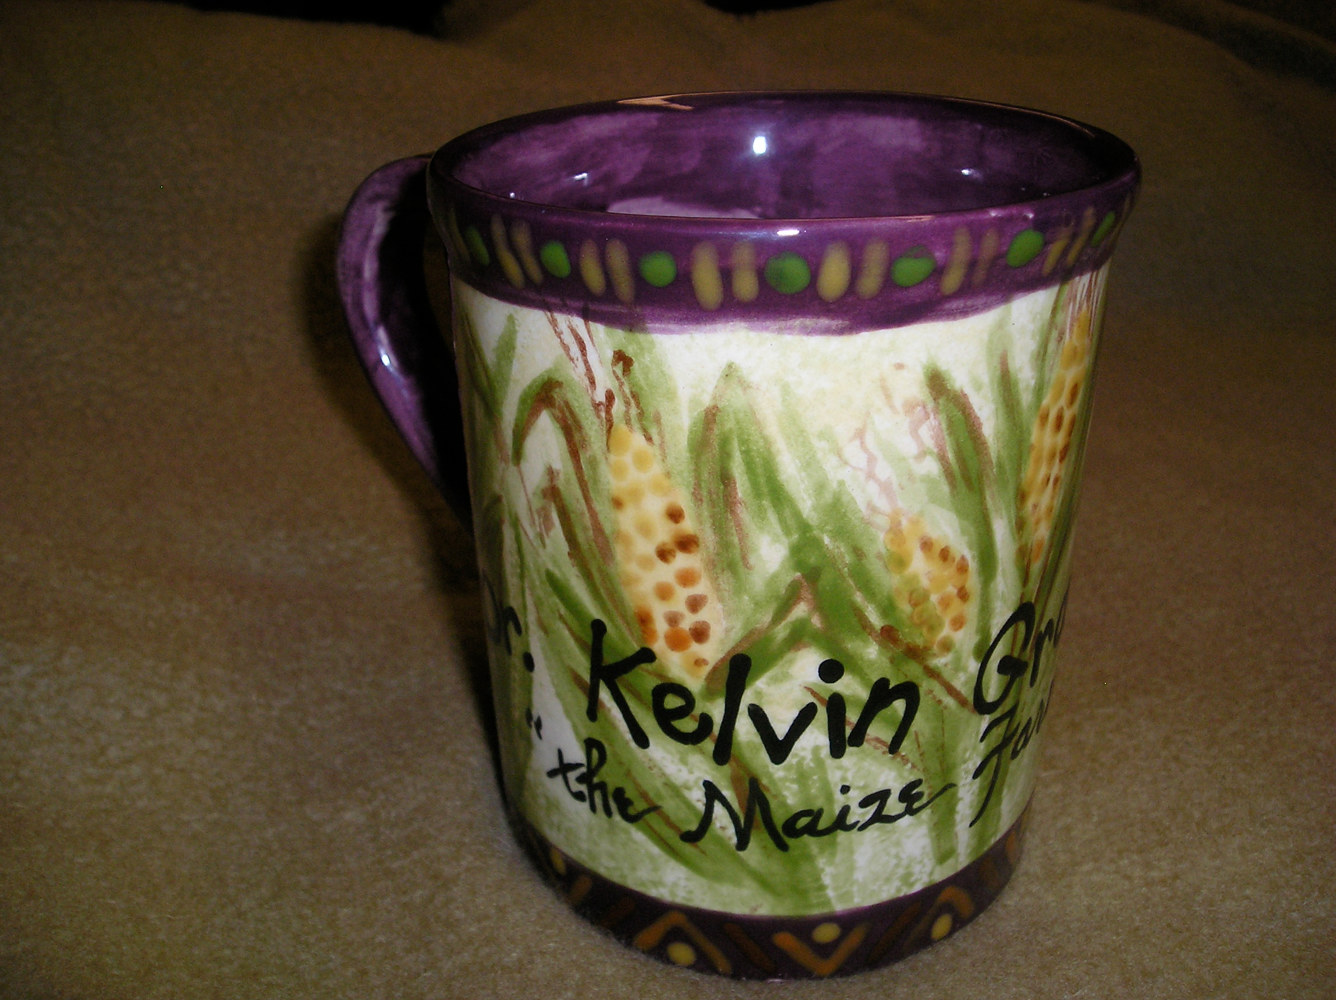 Italianate Eclectic Glazeworks: Kelvin Grant Mug (front) by Victoria Avila